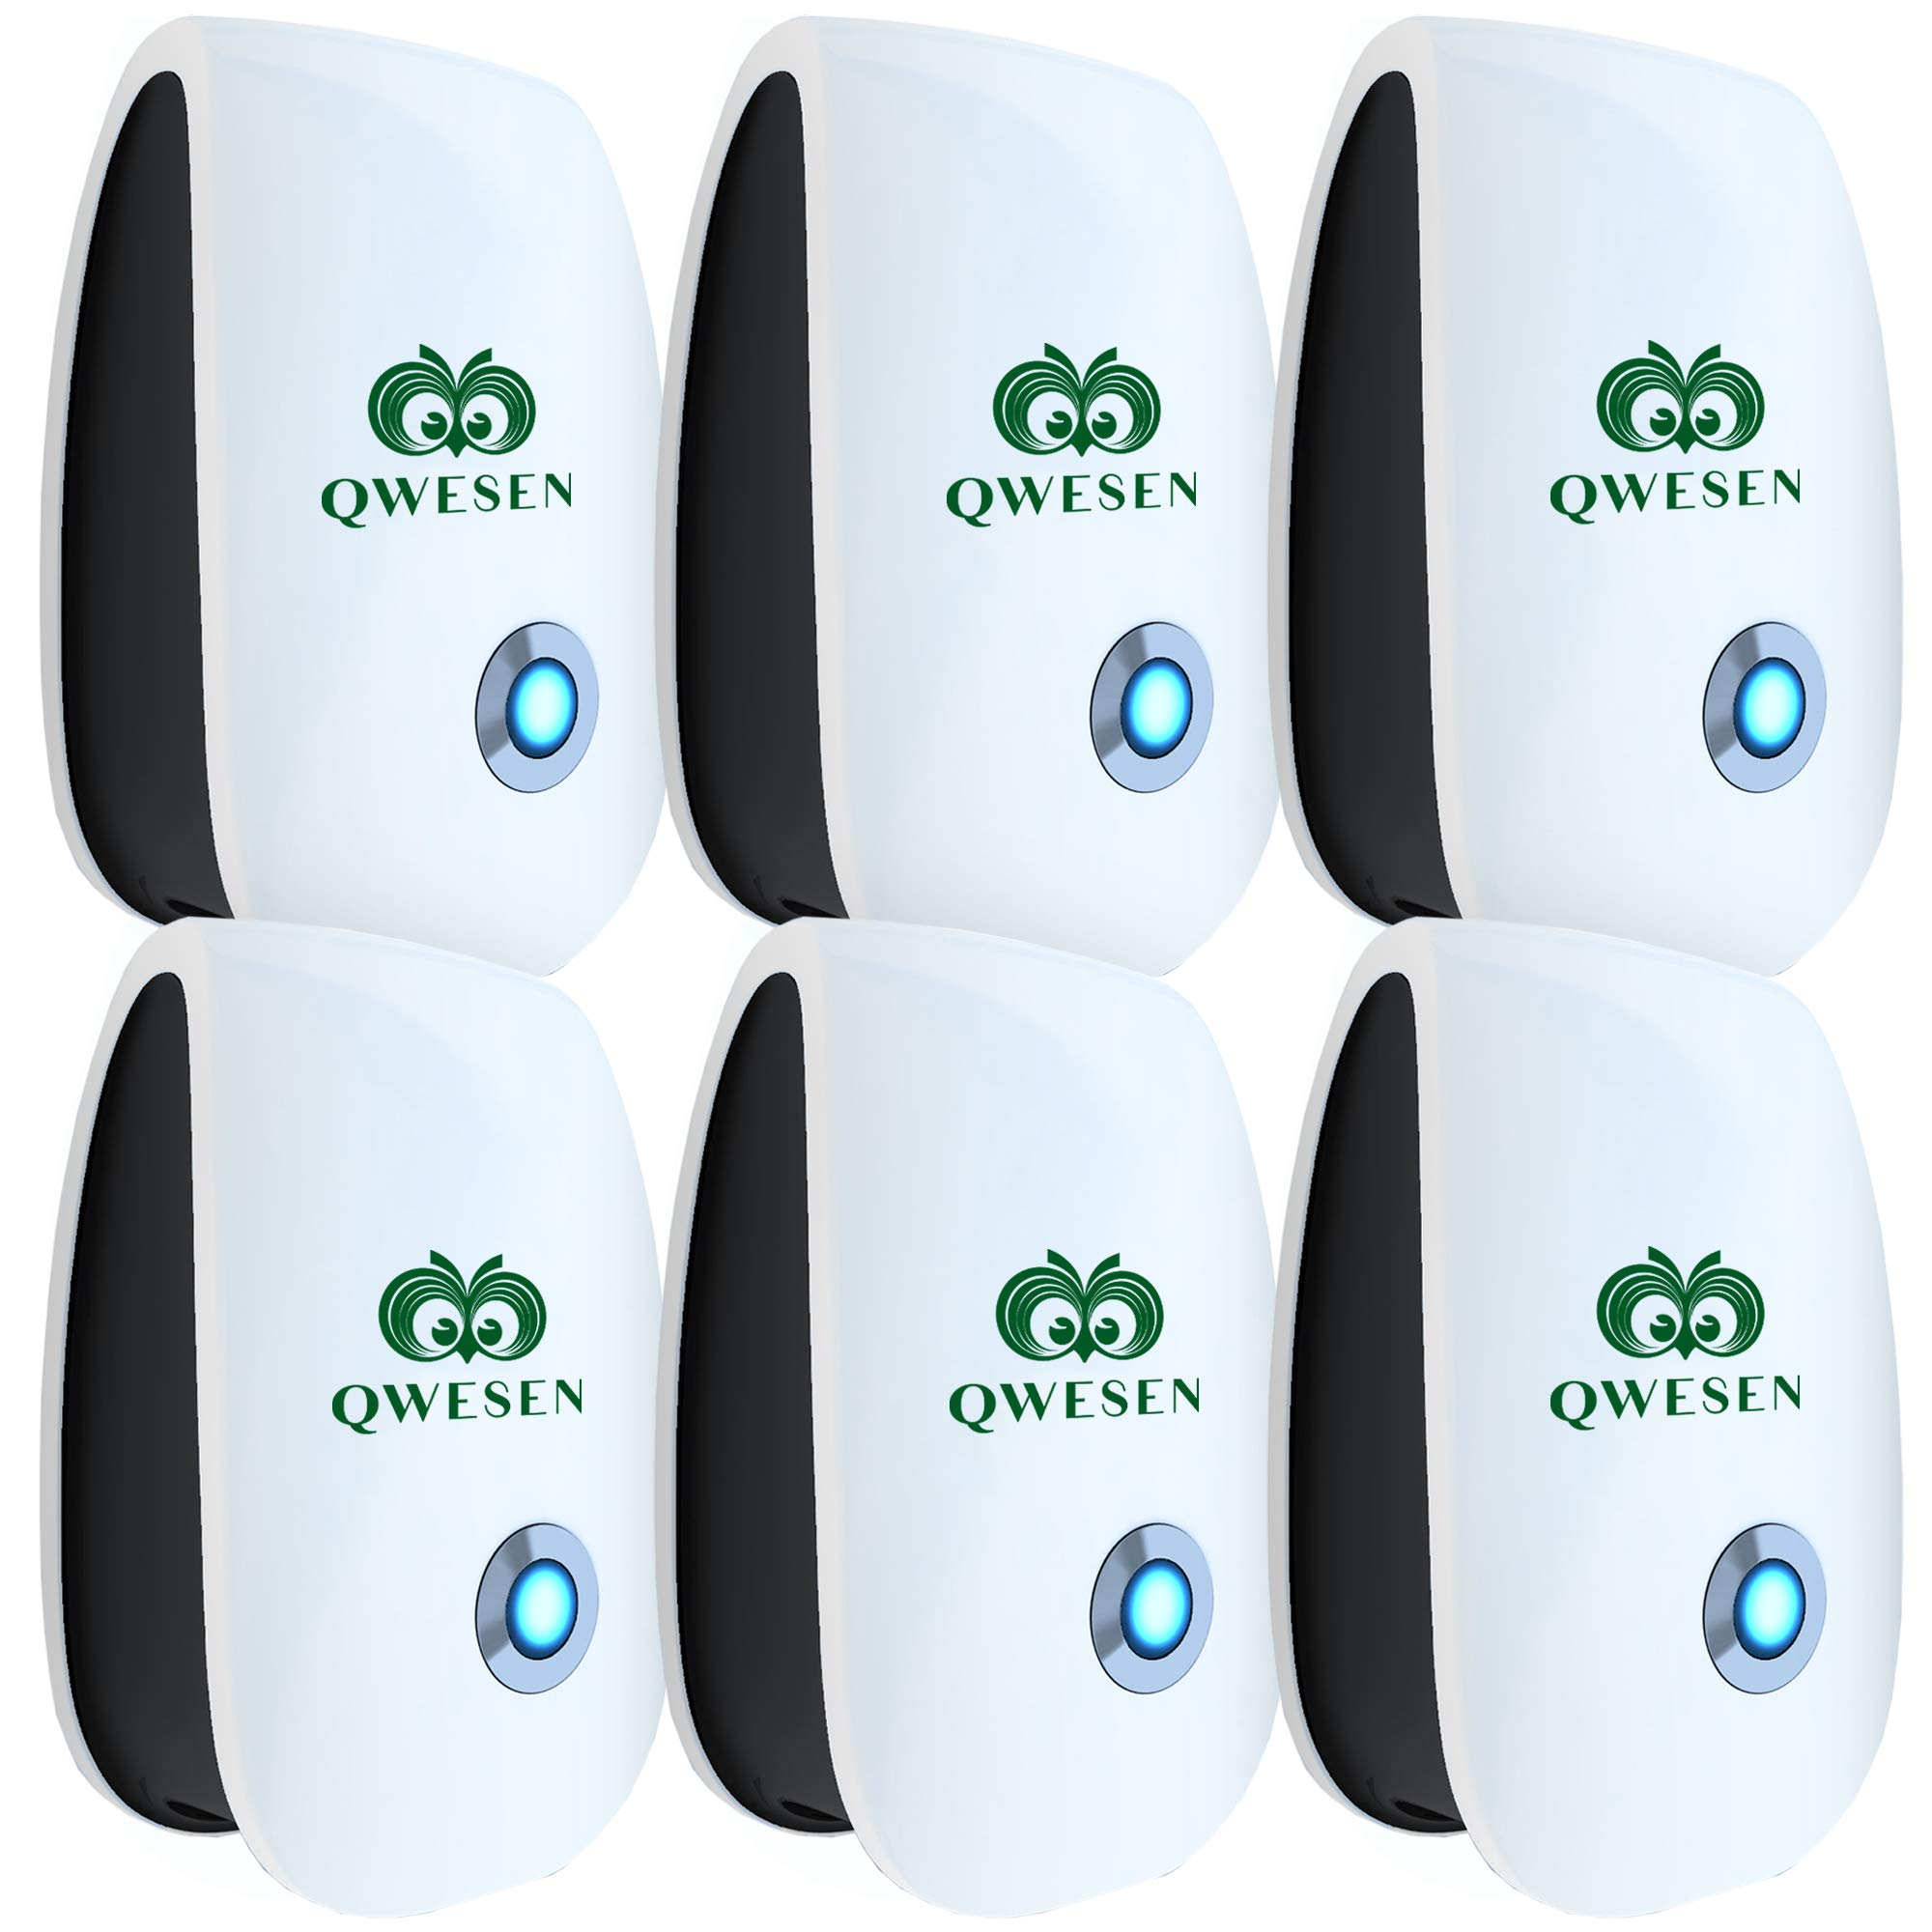 Ultrasonic Pest Repeller | Best Pest Control Ultrasonic Repellent - Set of 6 Electronic Pest Control - Pest Reject - Plug in Home Indoor Repeller - Get Rid of Mosquitos, Insects, Ants, Fleas, Gophers by QWESEN